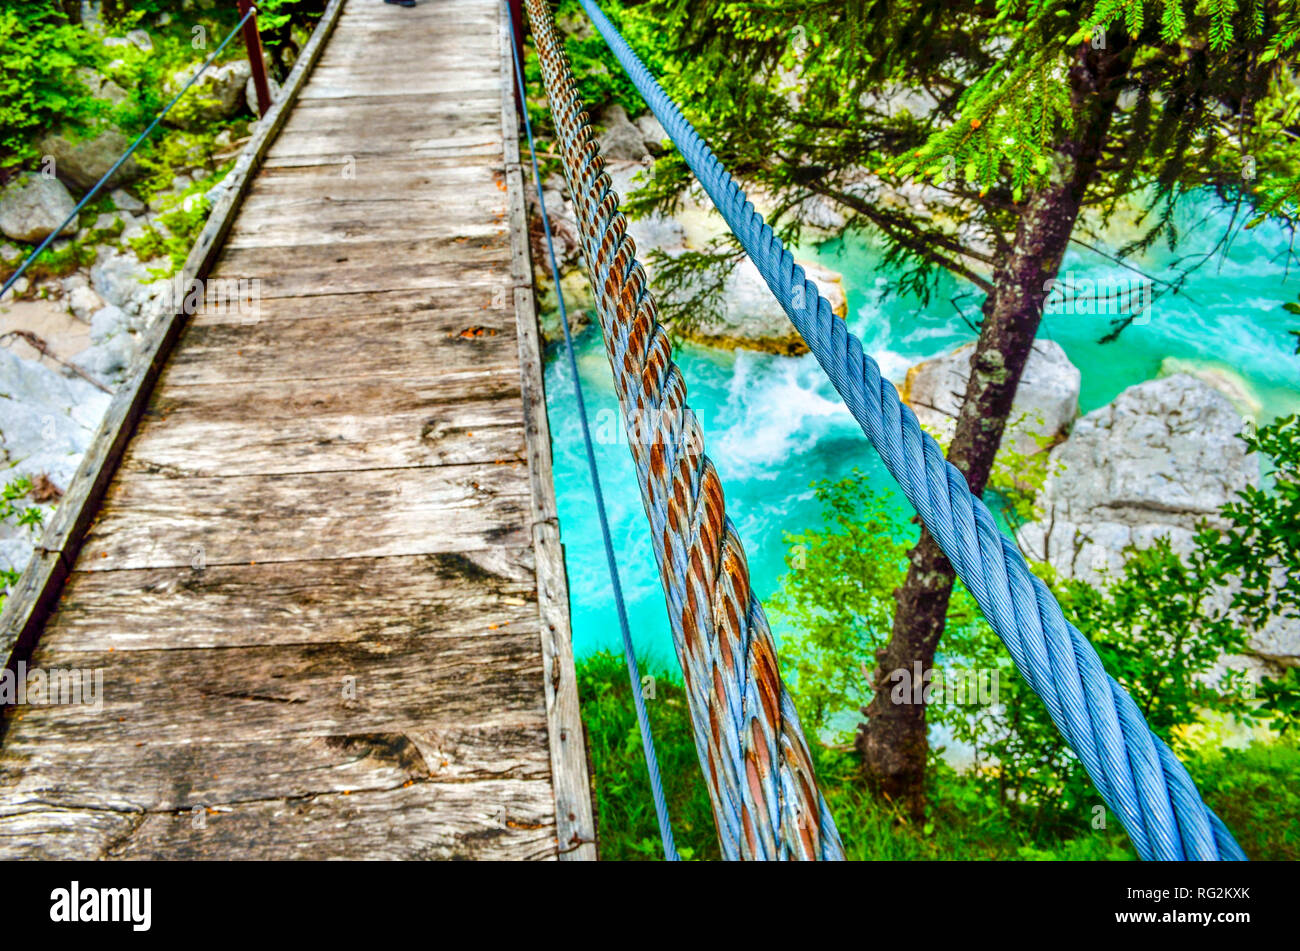 rickety bridge handrail footbridge river background wooden boards - Stock Image